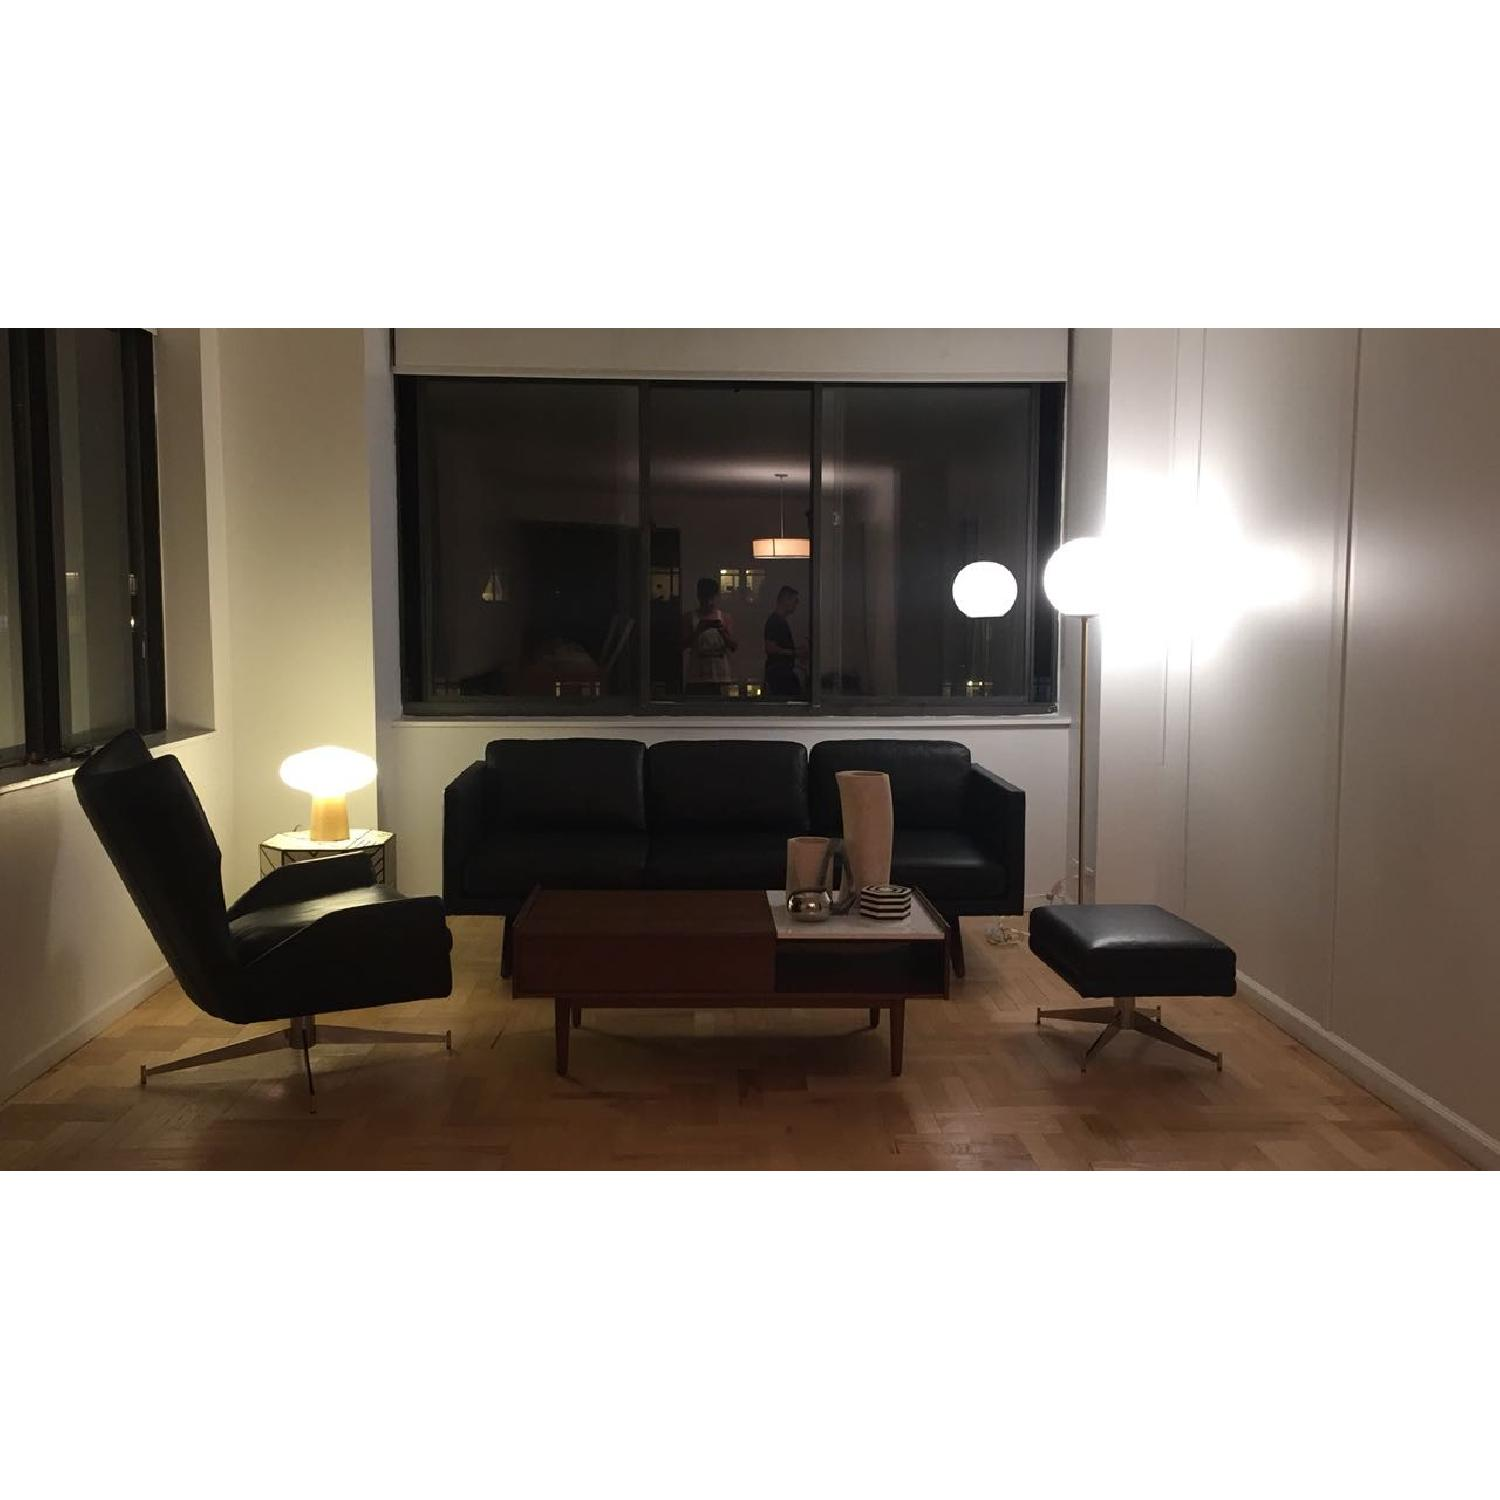 West Elm Brooklyn Down-Filled Leather Sofa - image-1